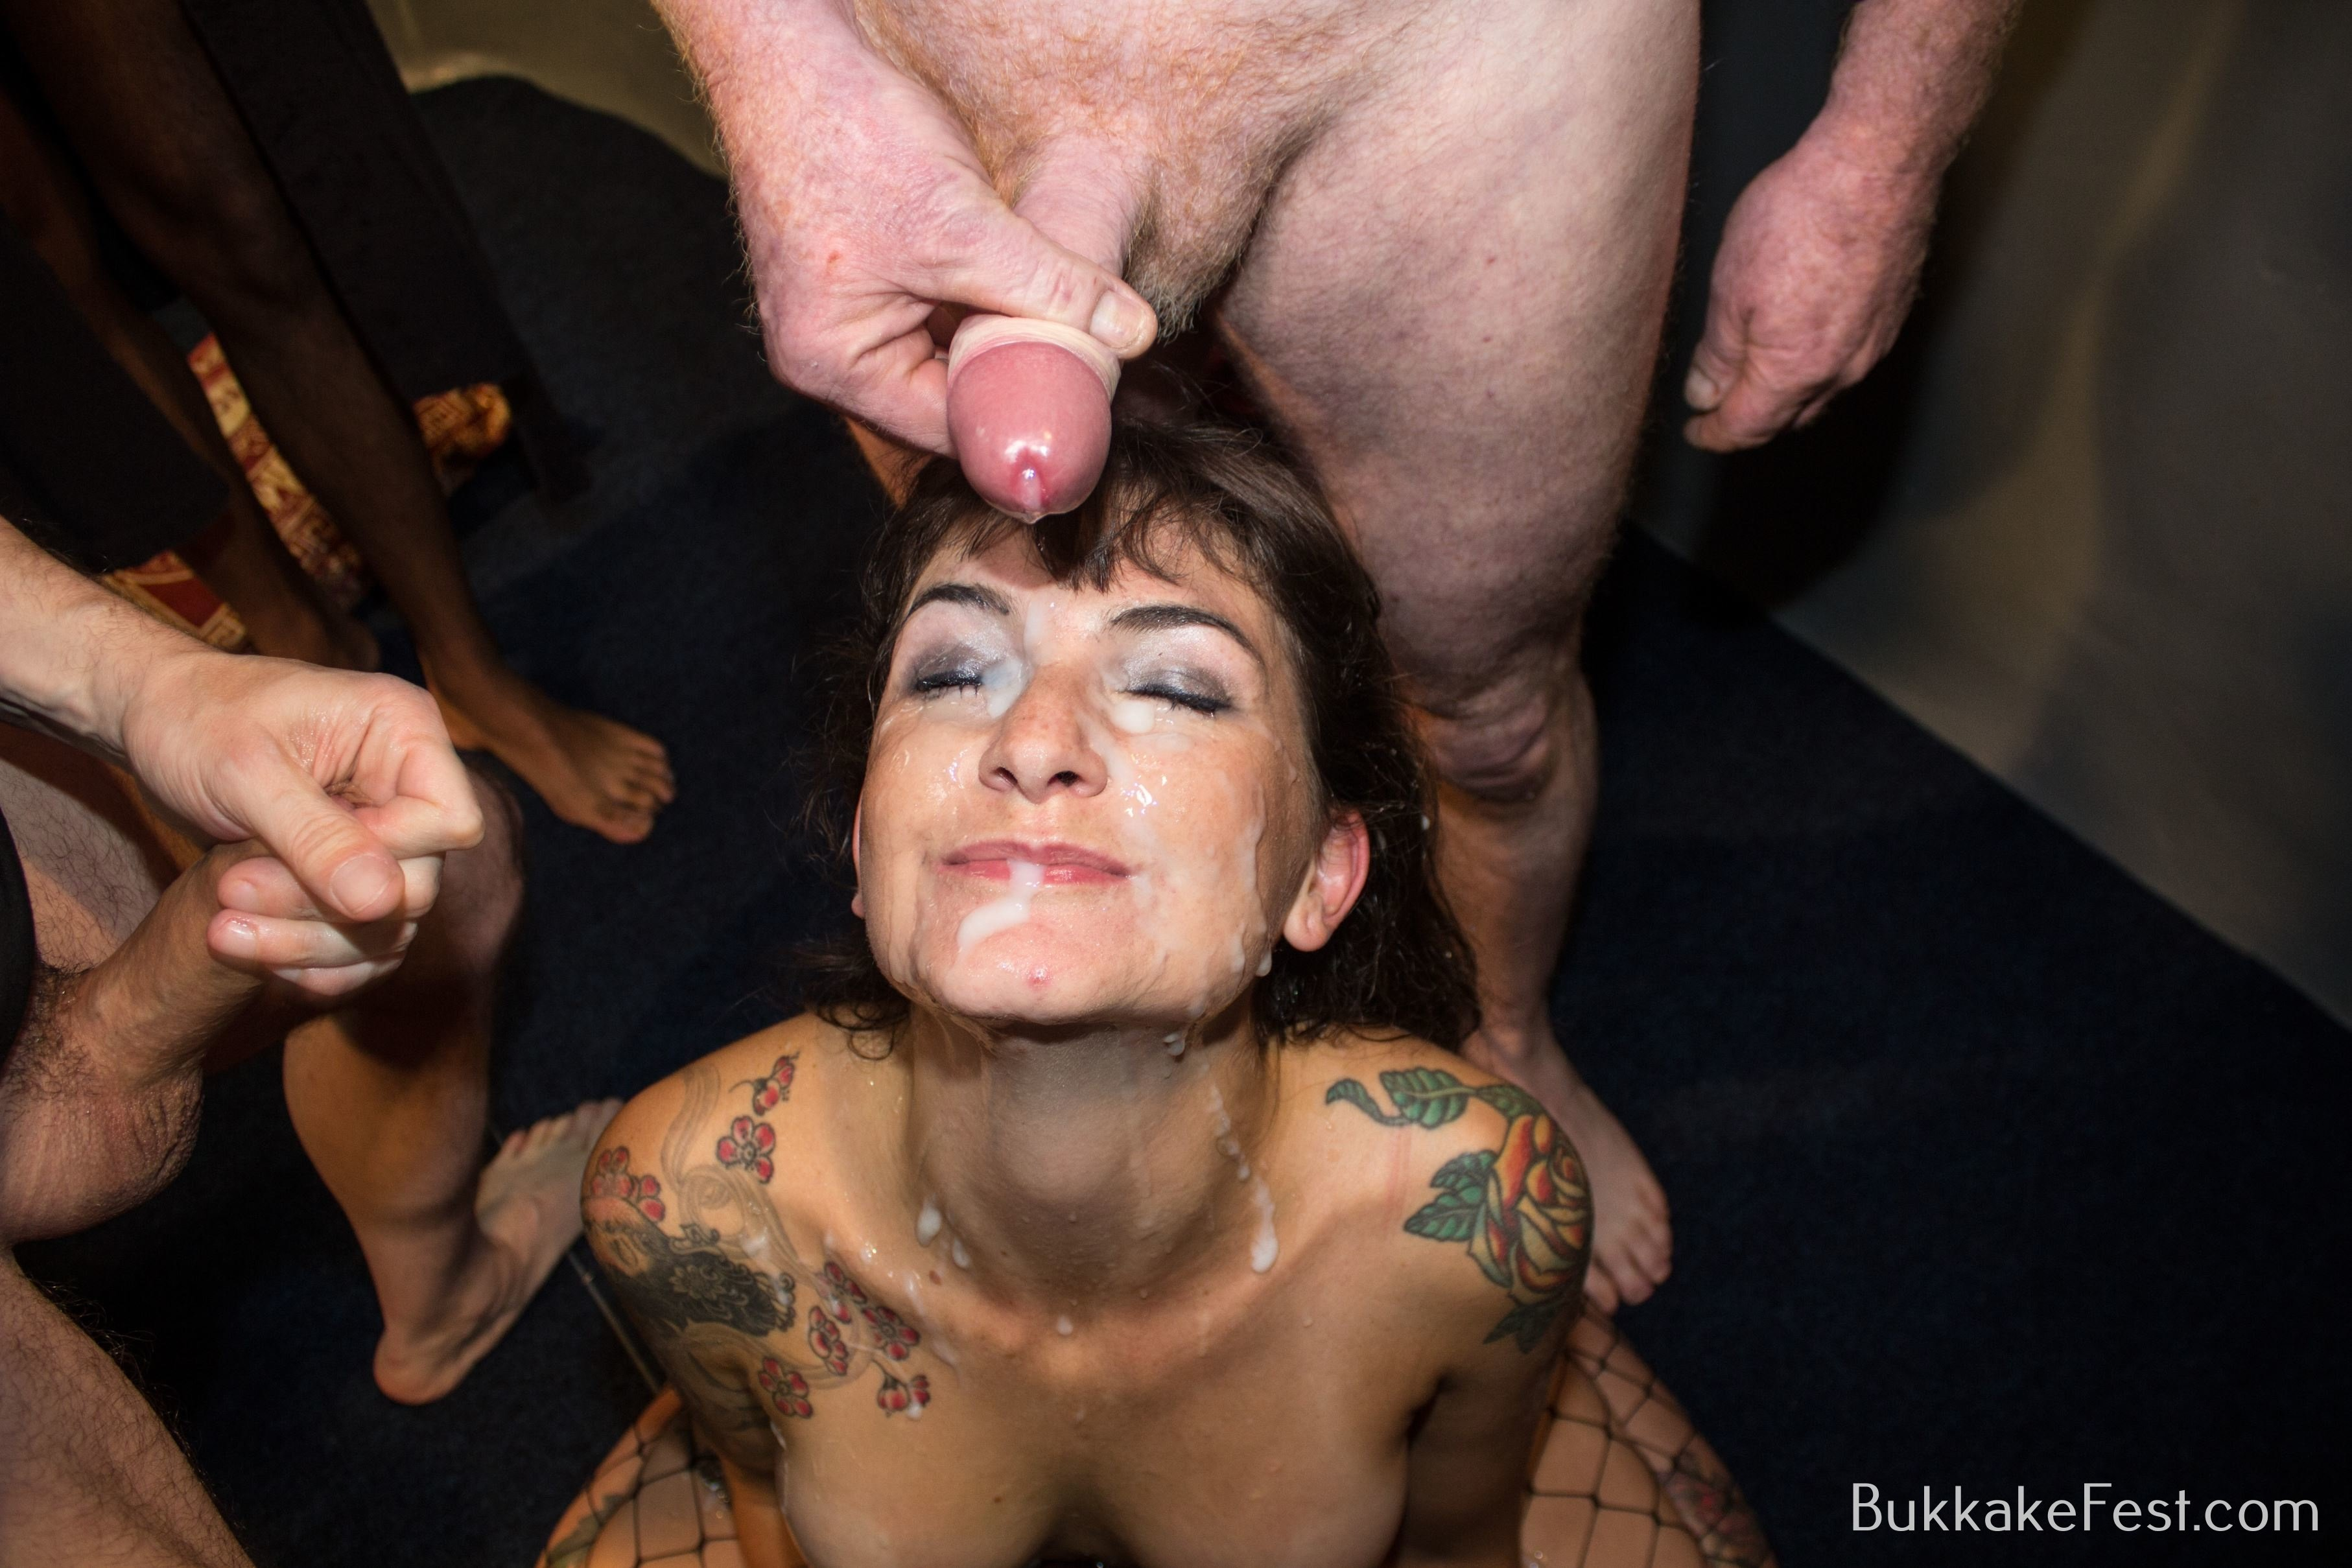 Husband forces wife to swallow Black Blow Job Game....wonderful mouth for a huge Black Cock!!!